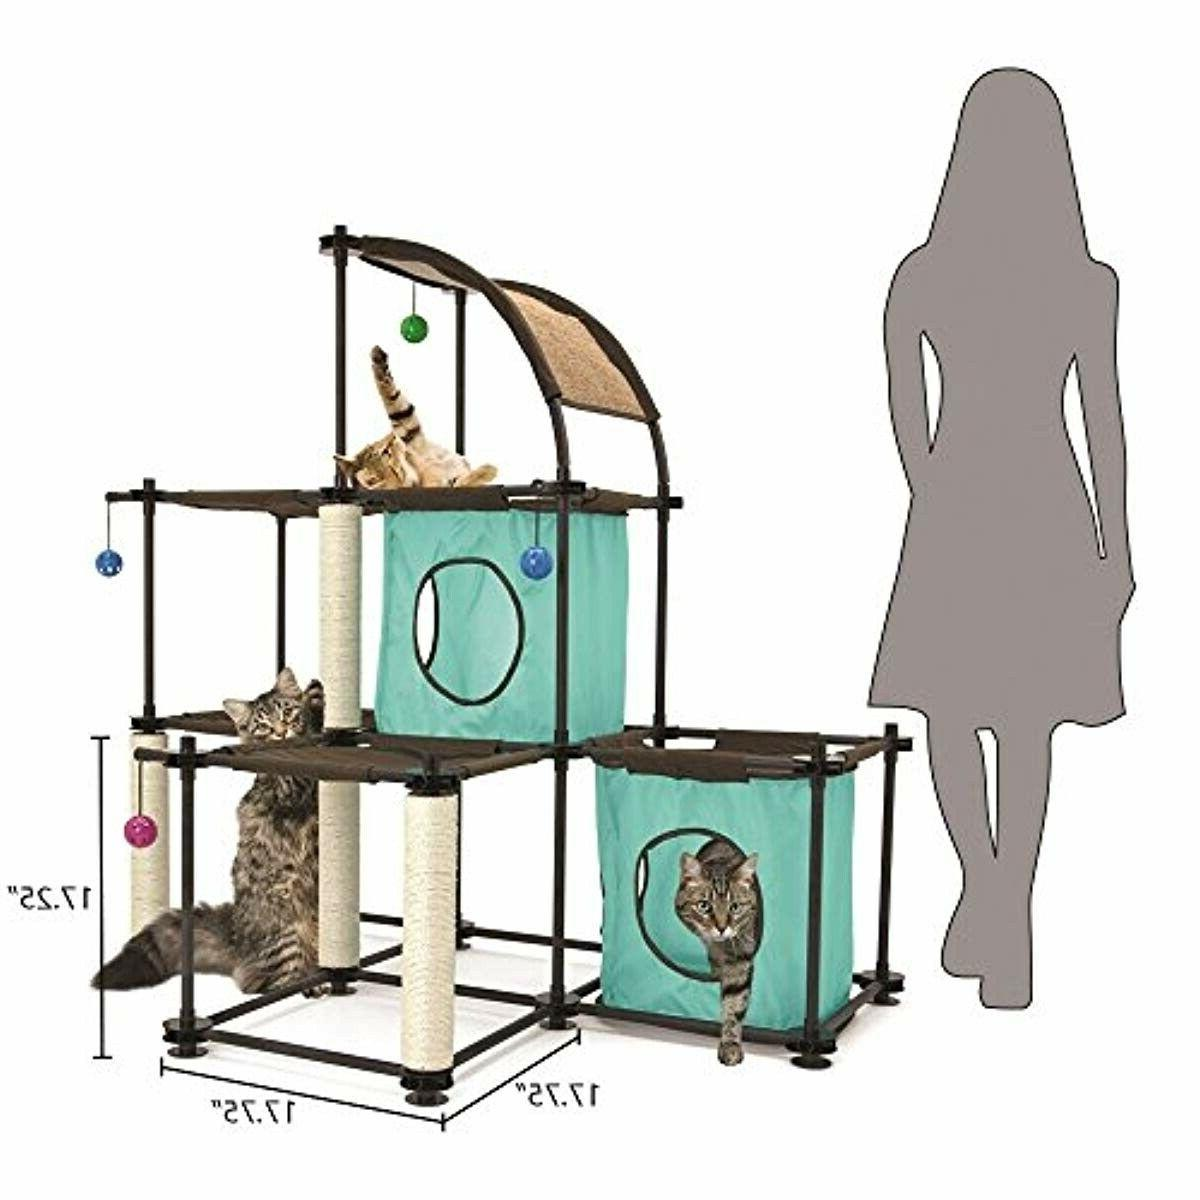 Cat City Claw Mega Kit Furniture Toy Bed Scratching Post